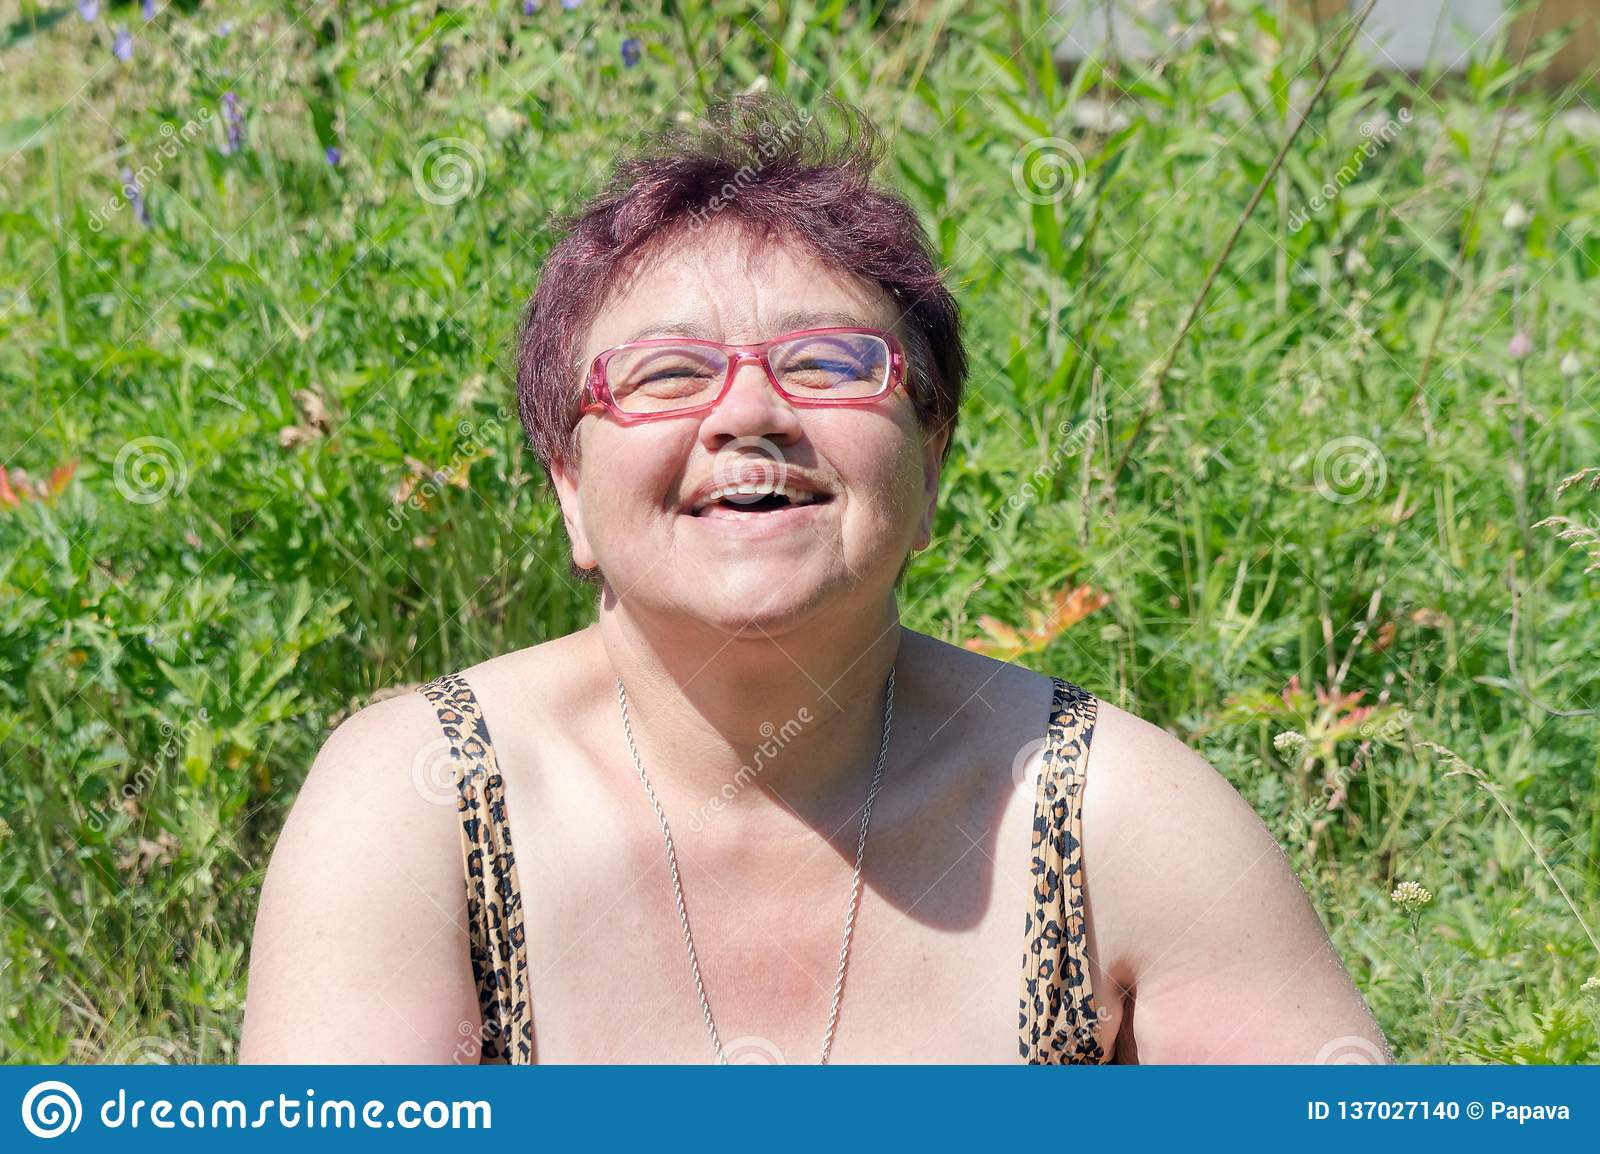 Elderly happy woman with glasses sunbathes in the grass under the bright summer sun